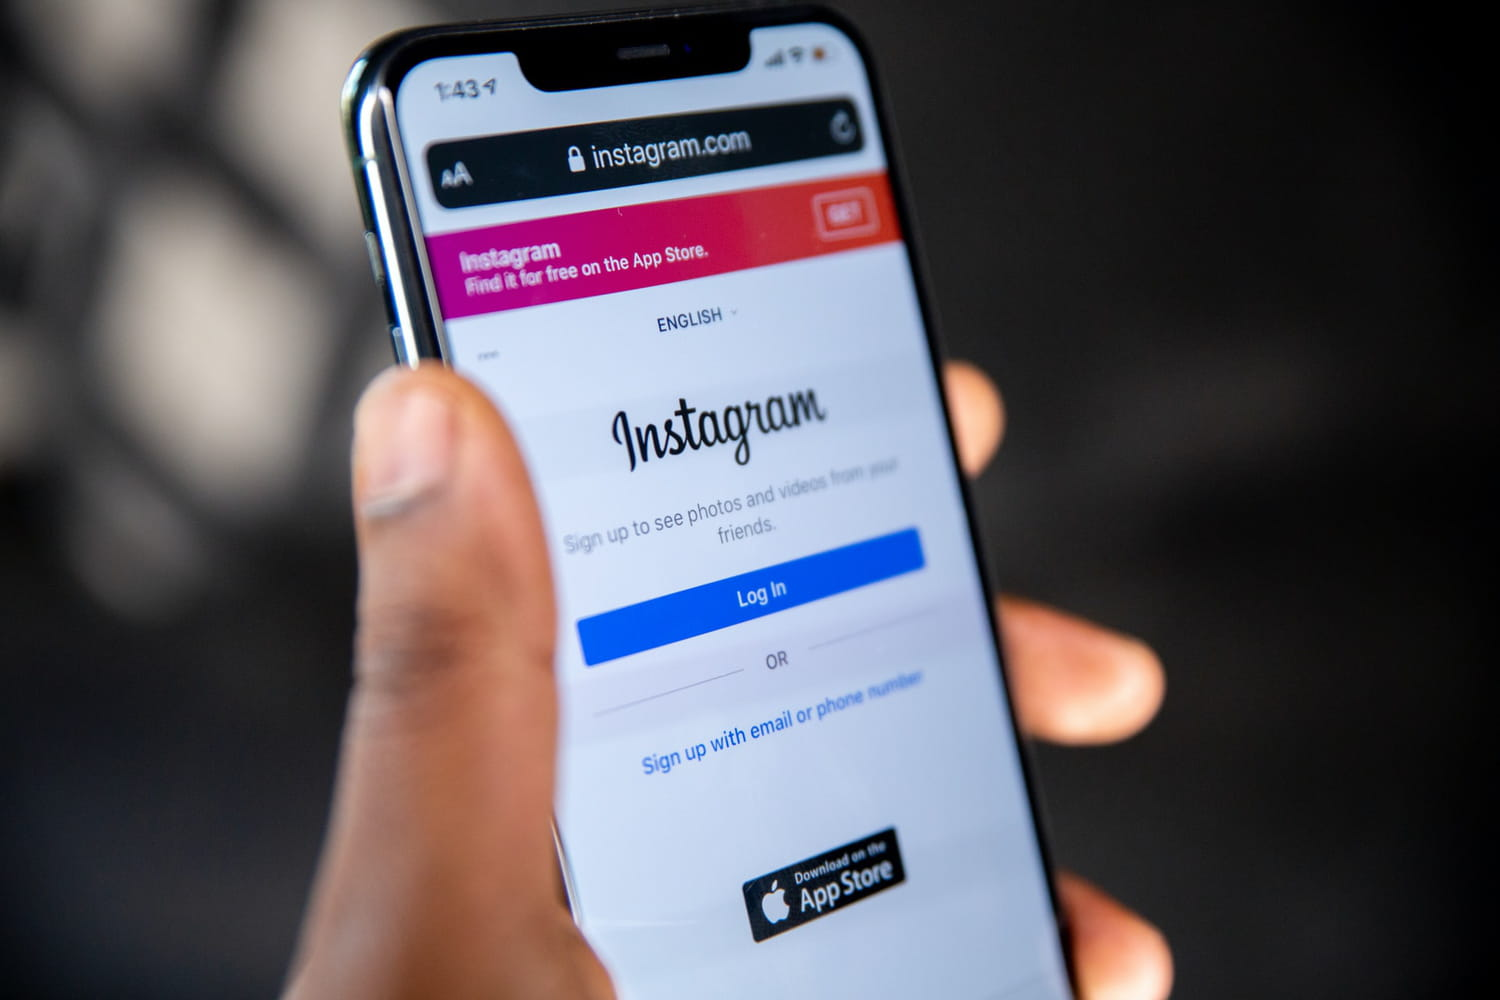 How To Open An Instagram Account Without Phone Number